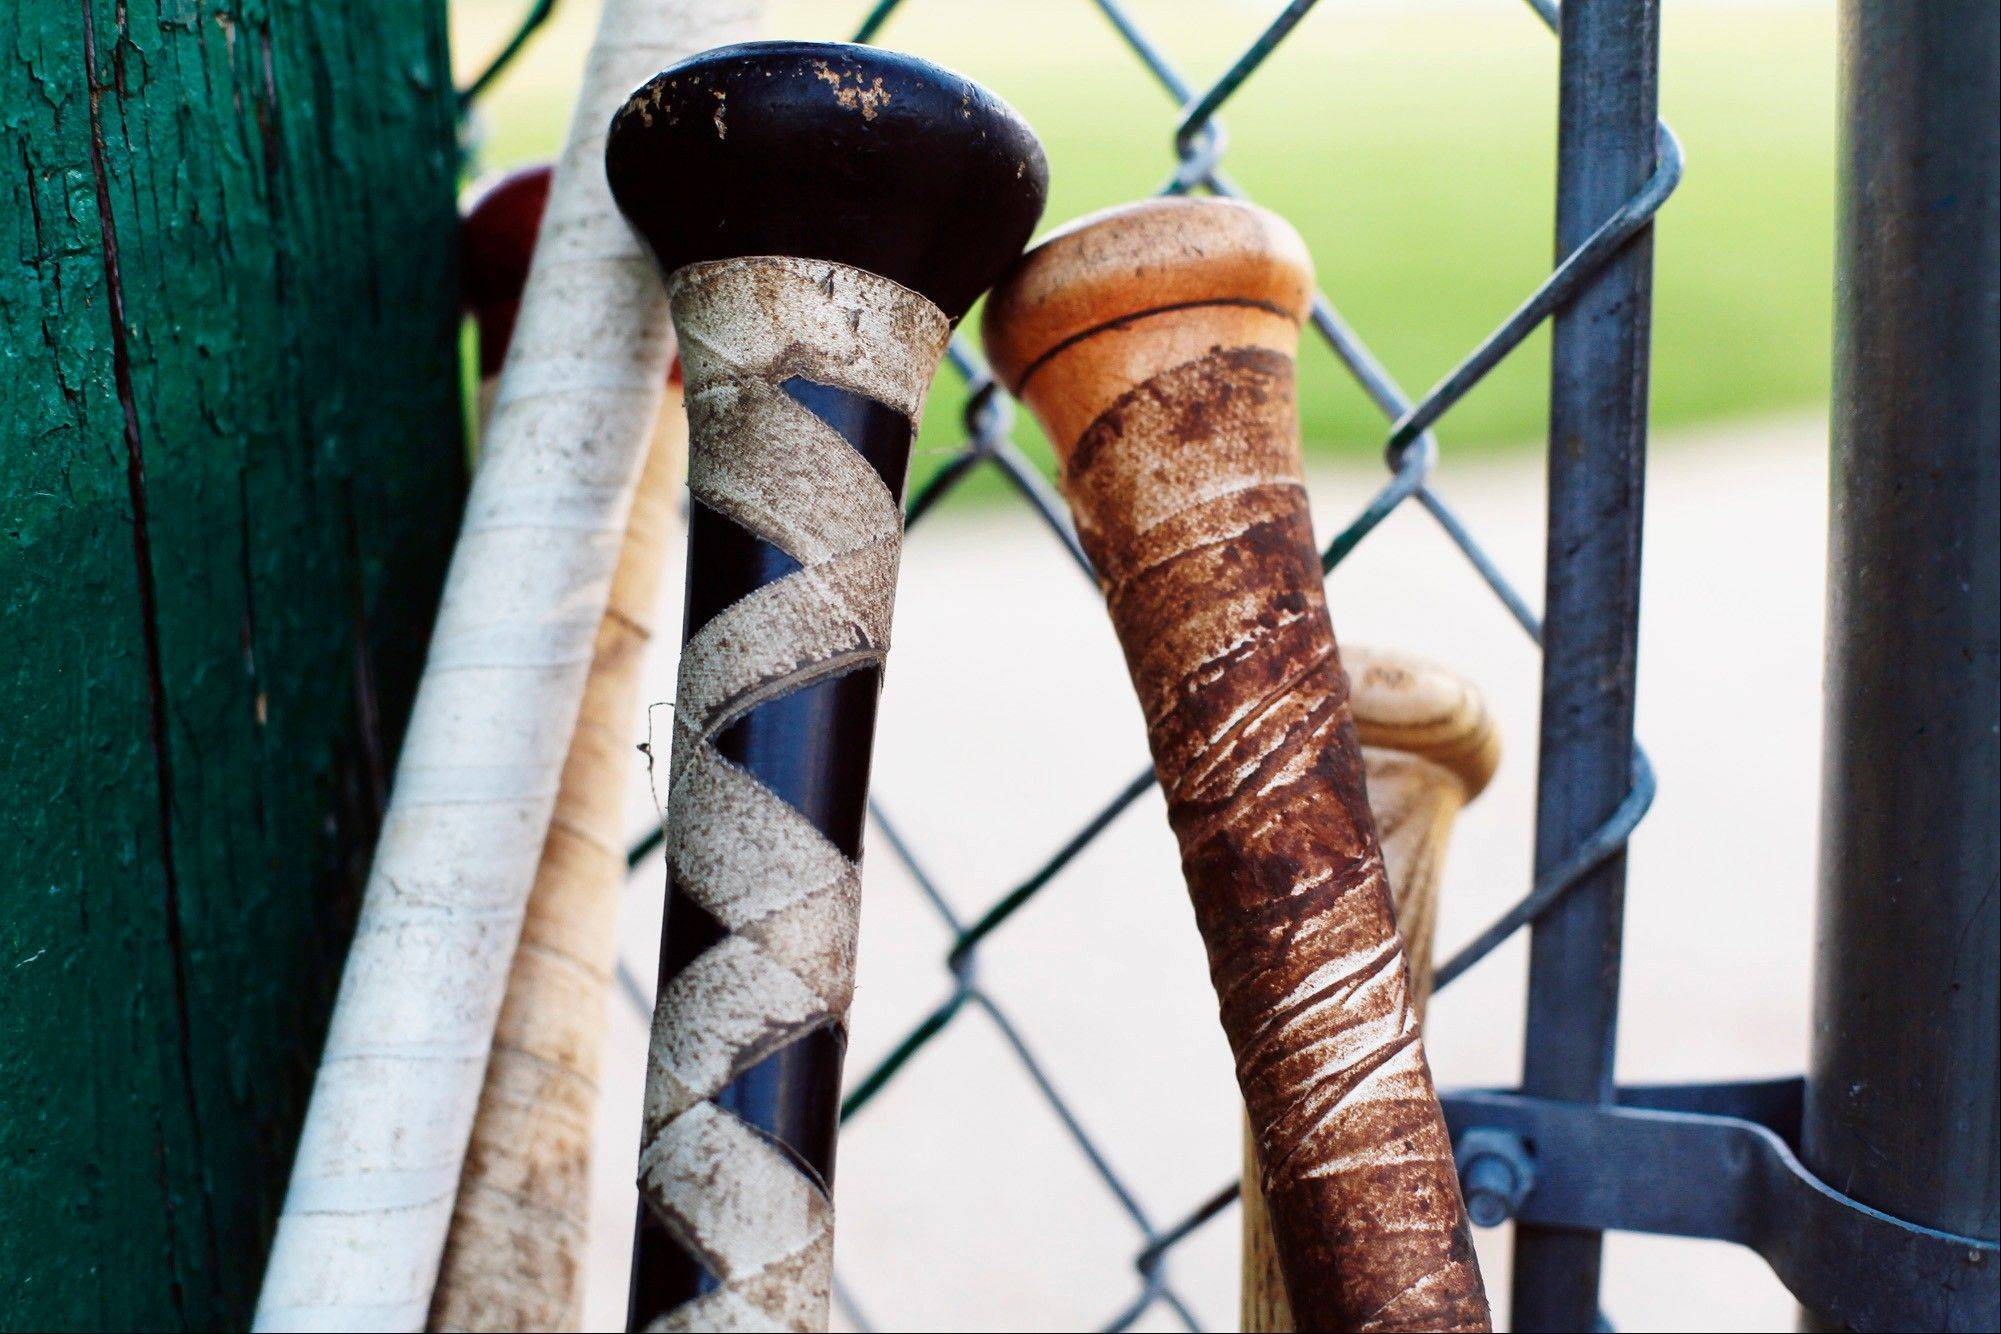 The Central Illinois Wood Bat League is an outlet for baseball players who have left high school or college and want to continue their love of the game, particularly fastpitch ball played with wood bats instead of aluminum.